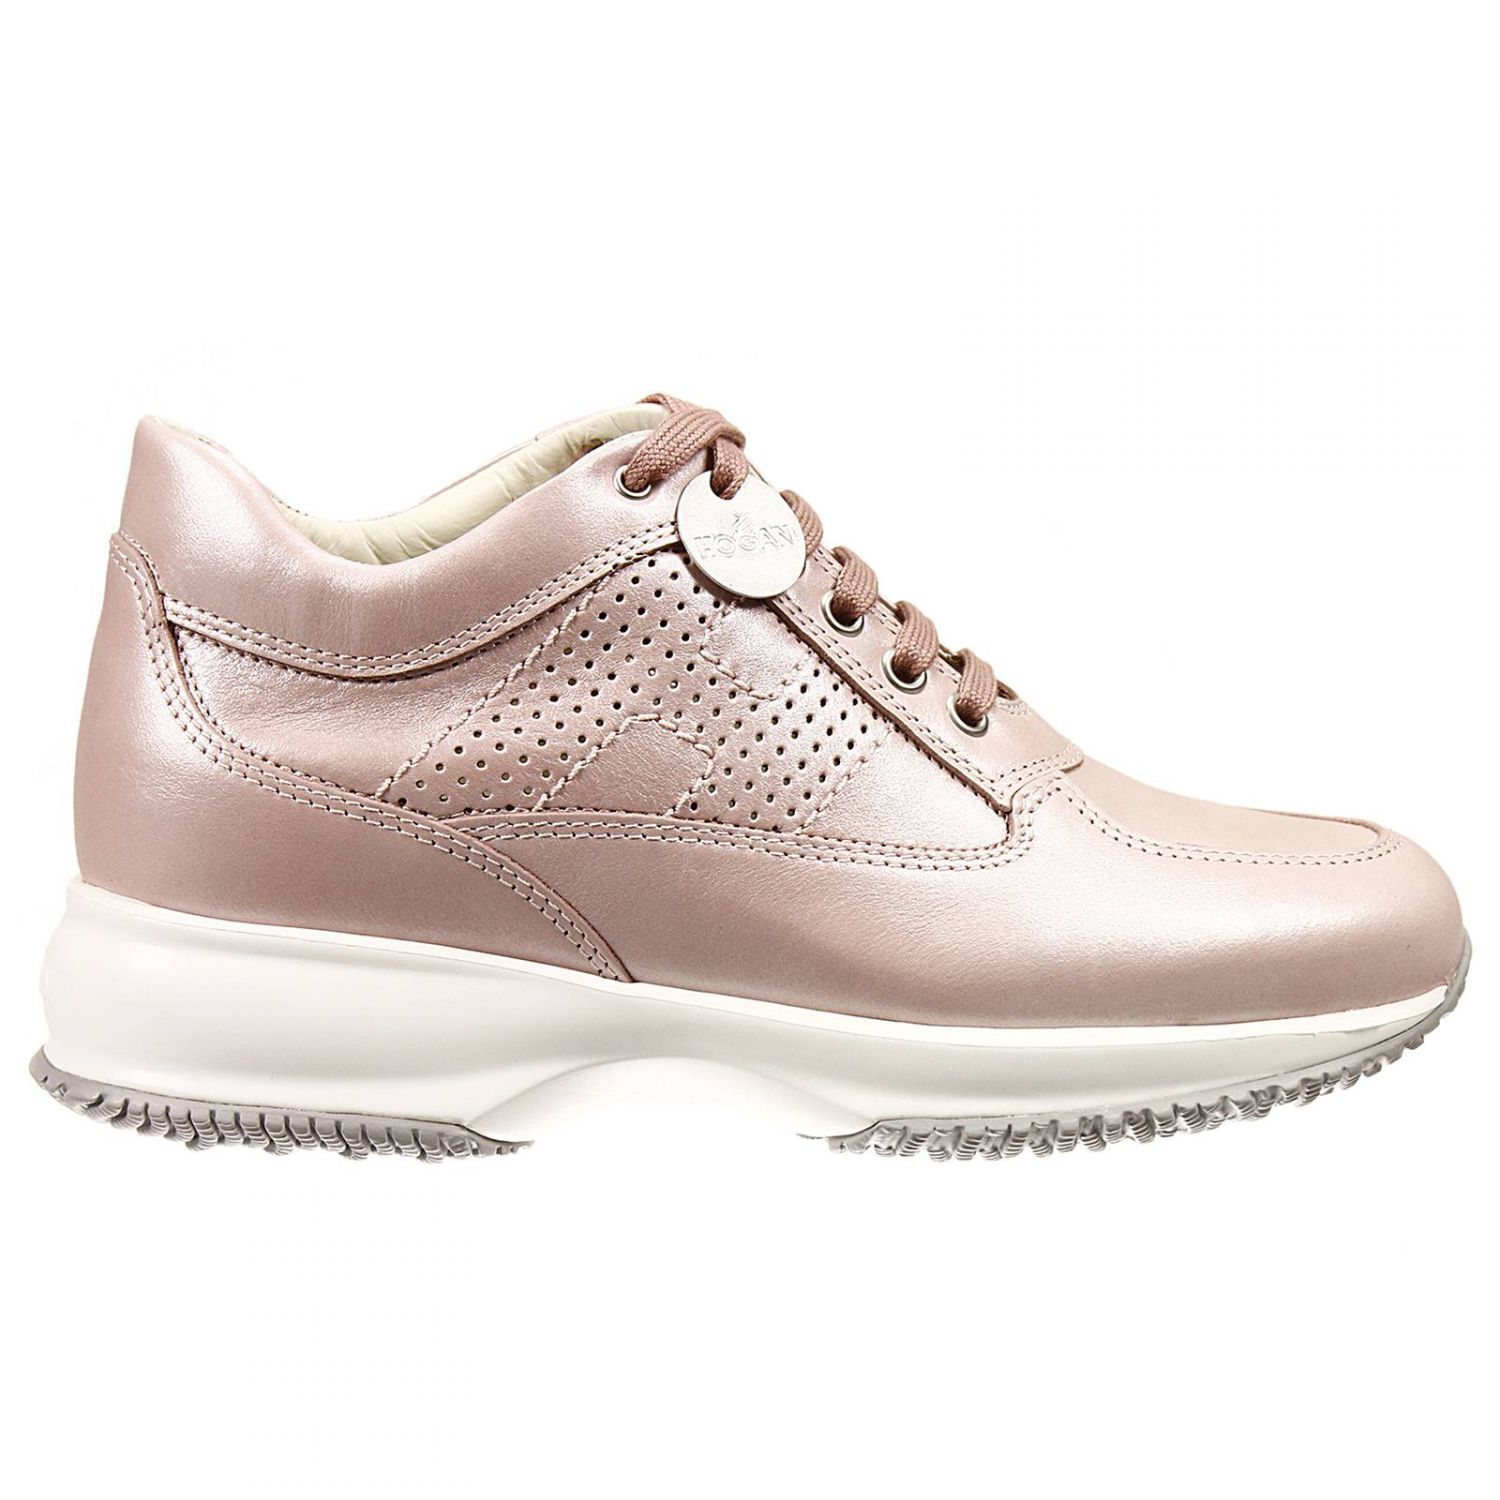 Lyst - Hogan Sneakers Interactive Perforate H Pearly Leather Shoes ... 0a7974878ed